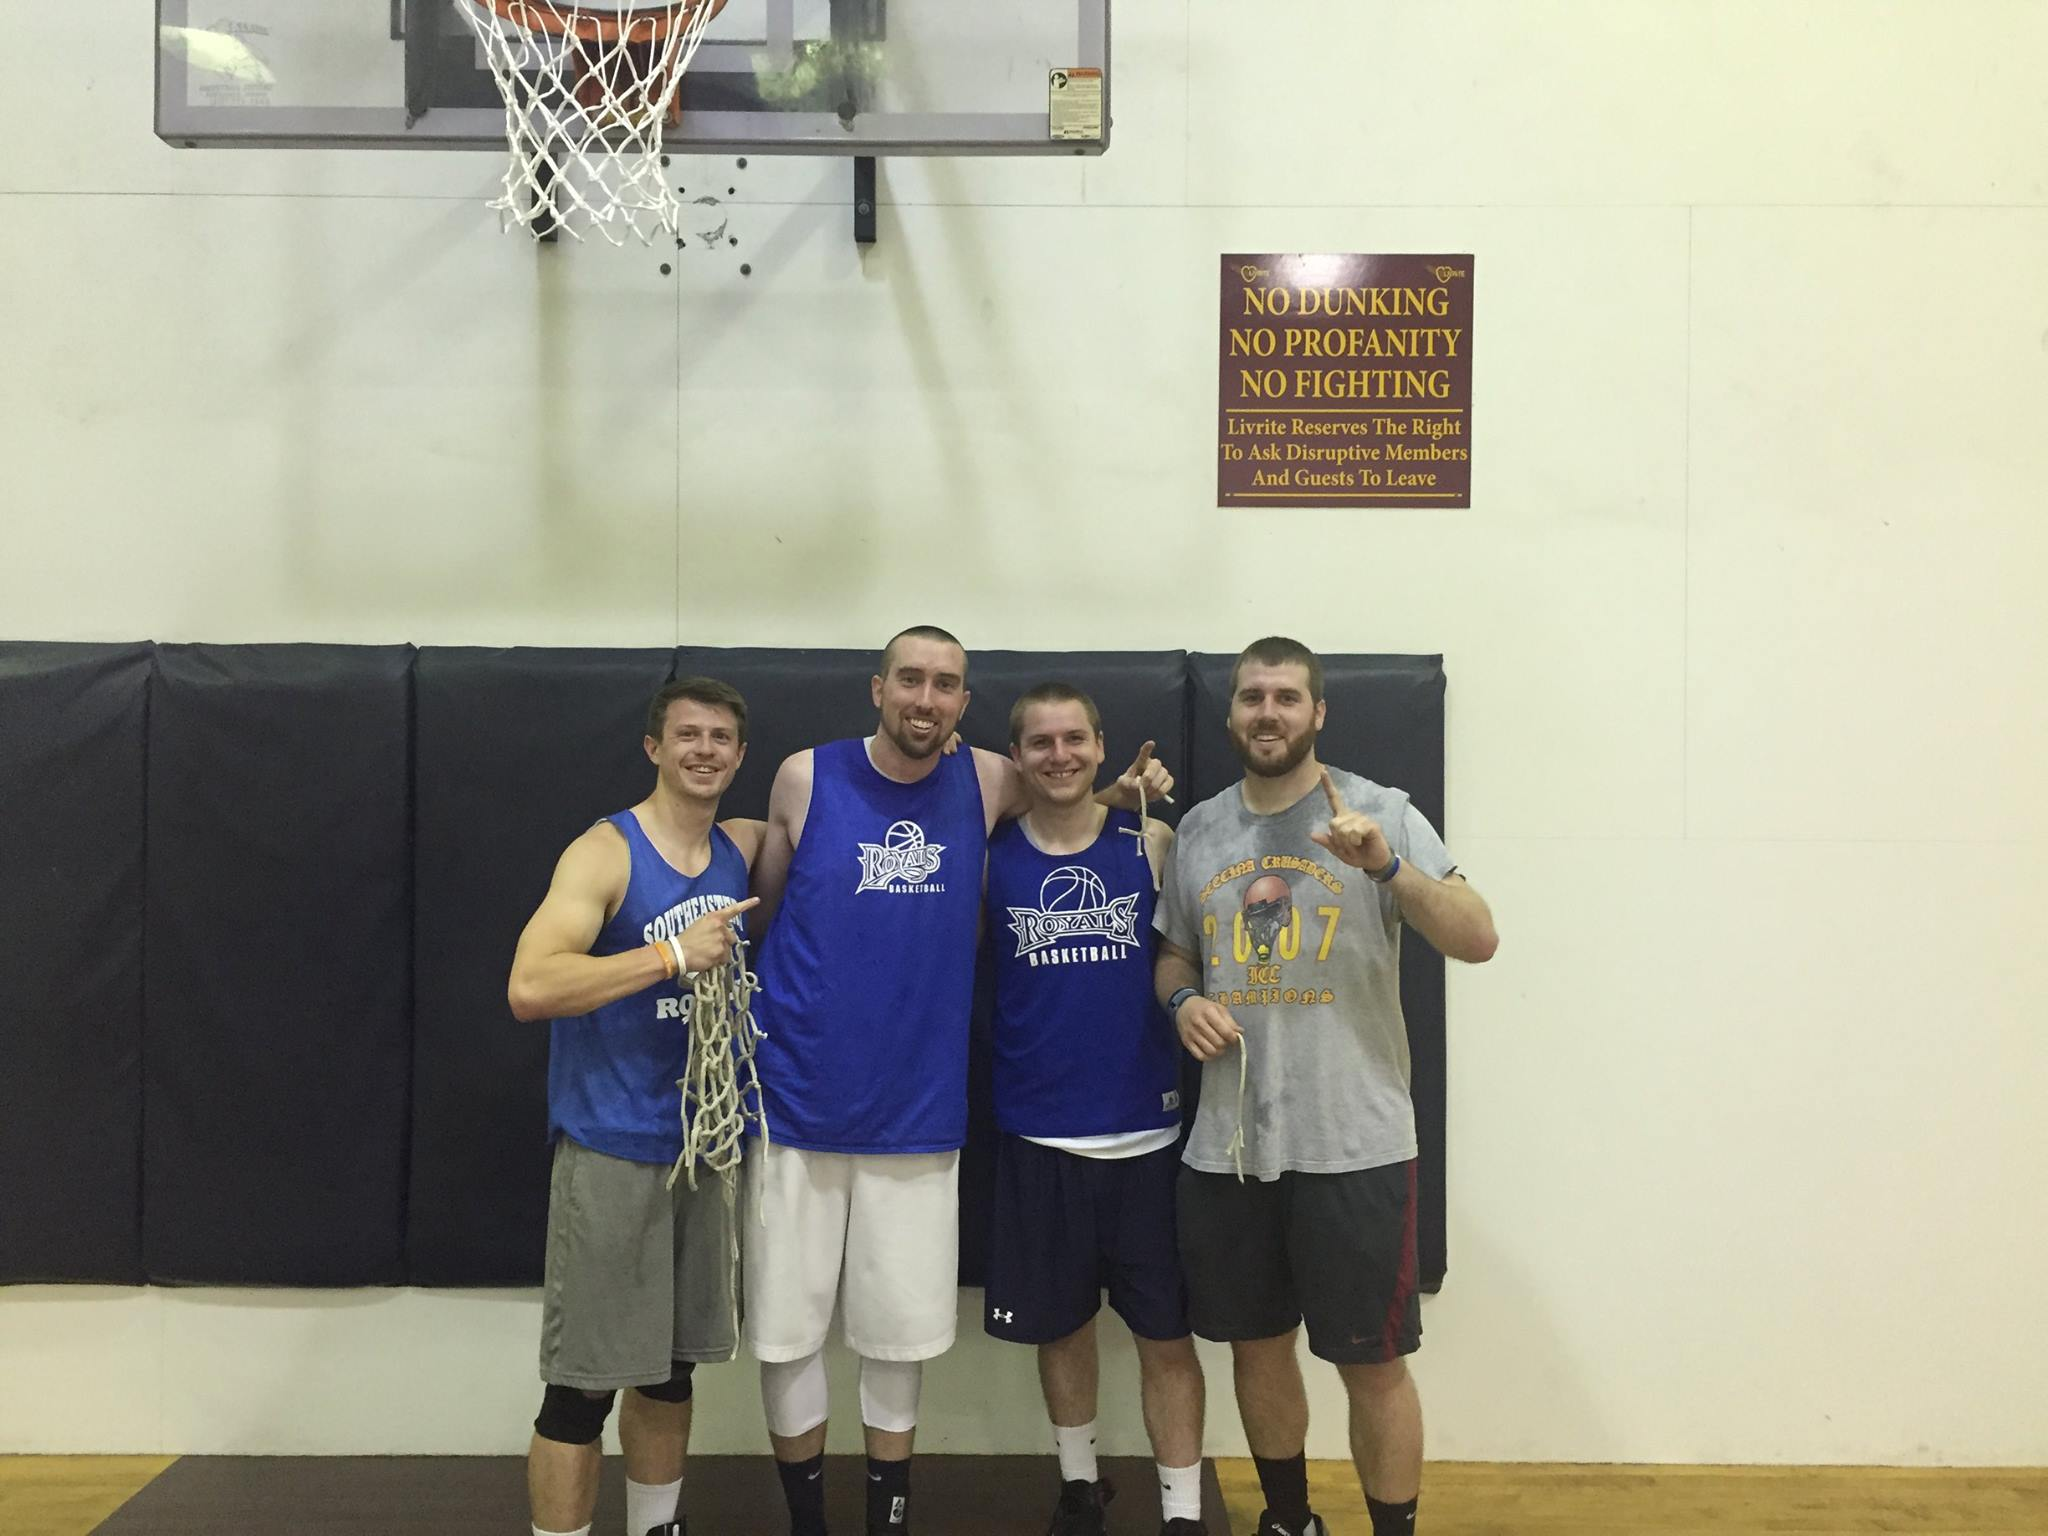 Men's Basketball League Champions